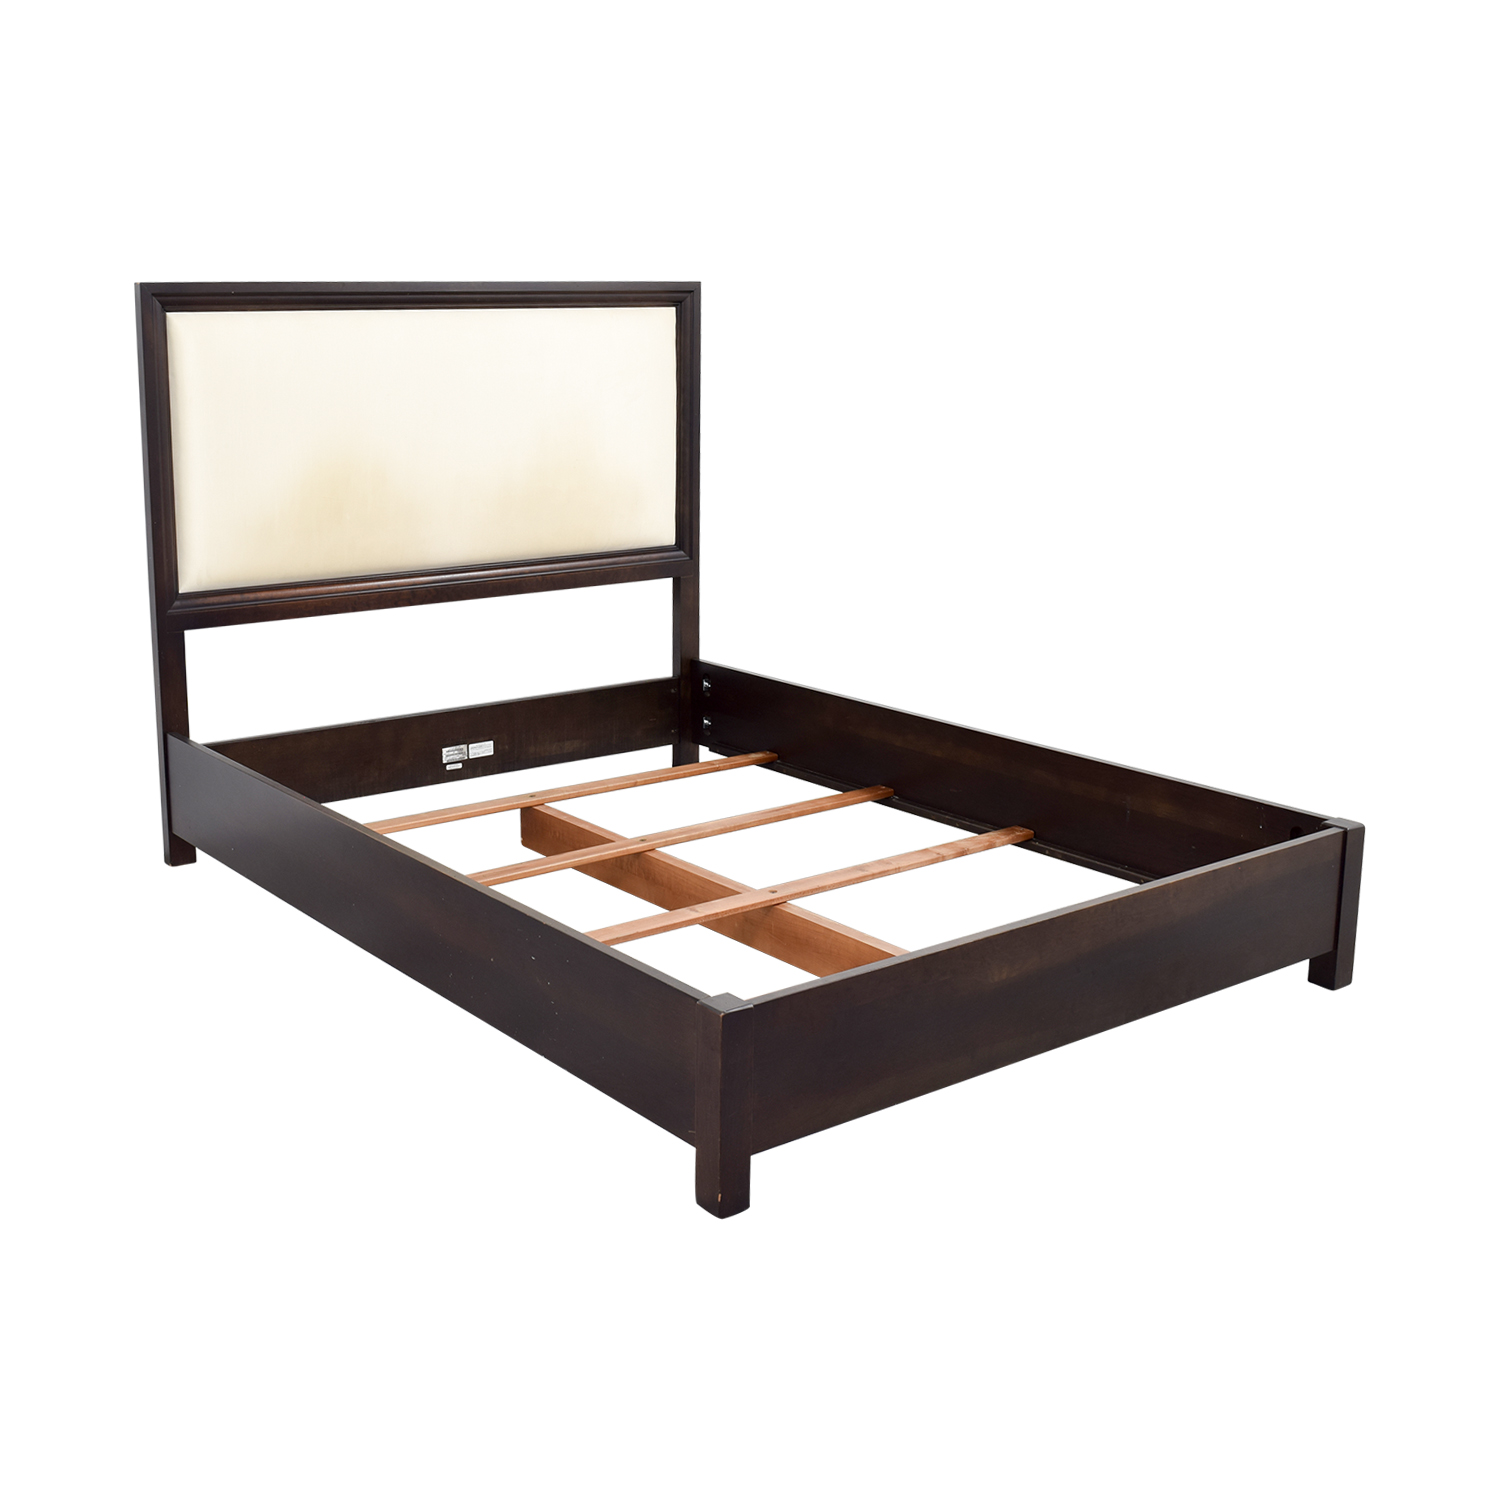 75 off ethan allen ethan allen wood and cream upholstered queen bed frame beds - Ethan allen queen beds ...